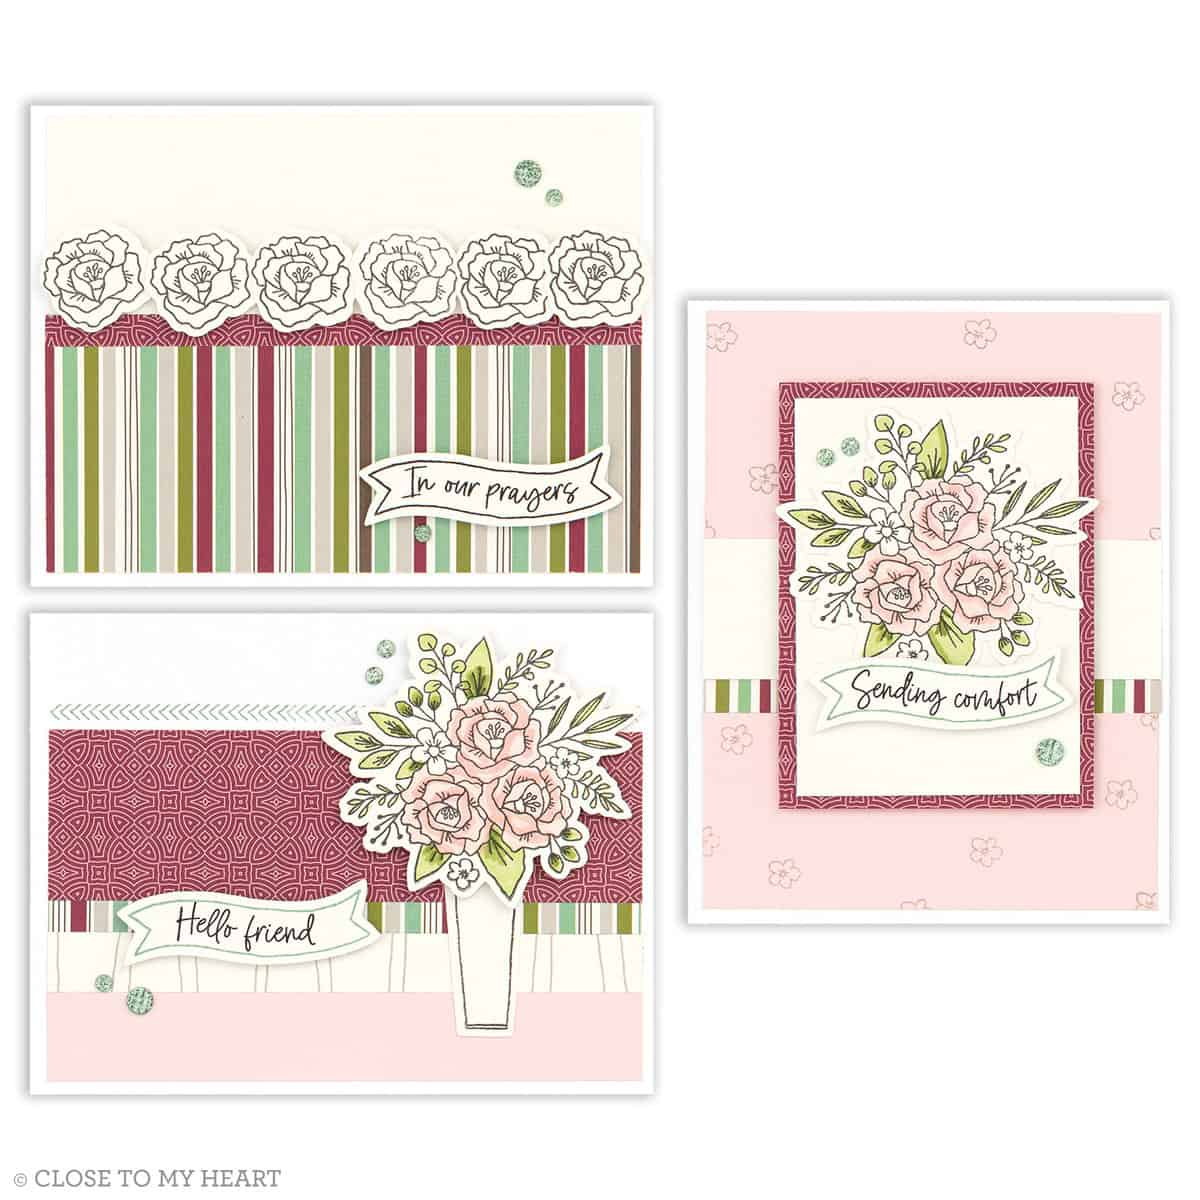 Spruced Up Cardmaking kit - new cardmaking products from CTMH